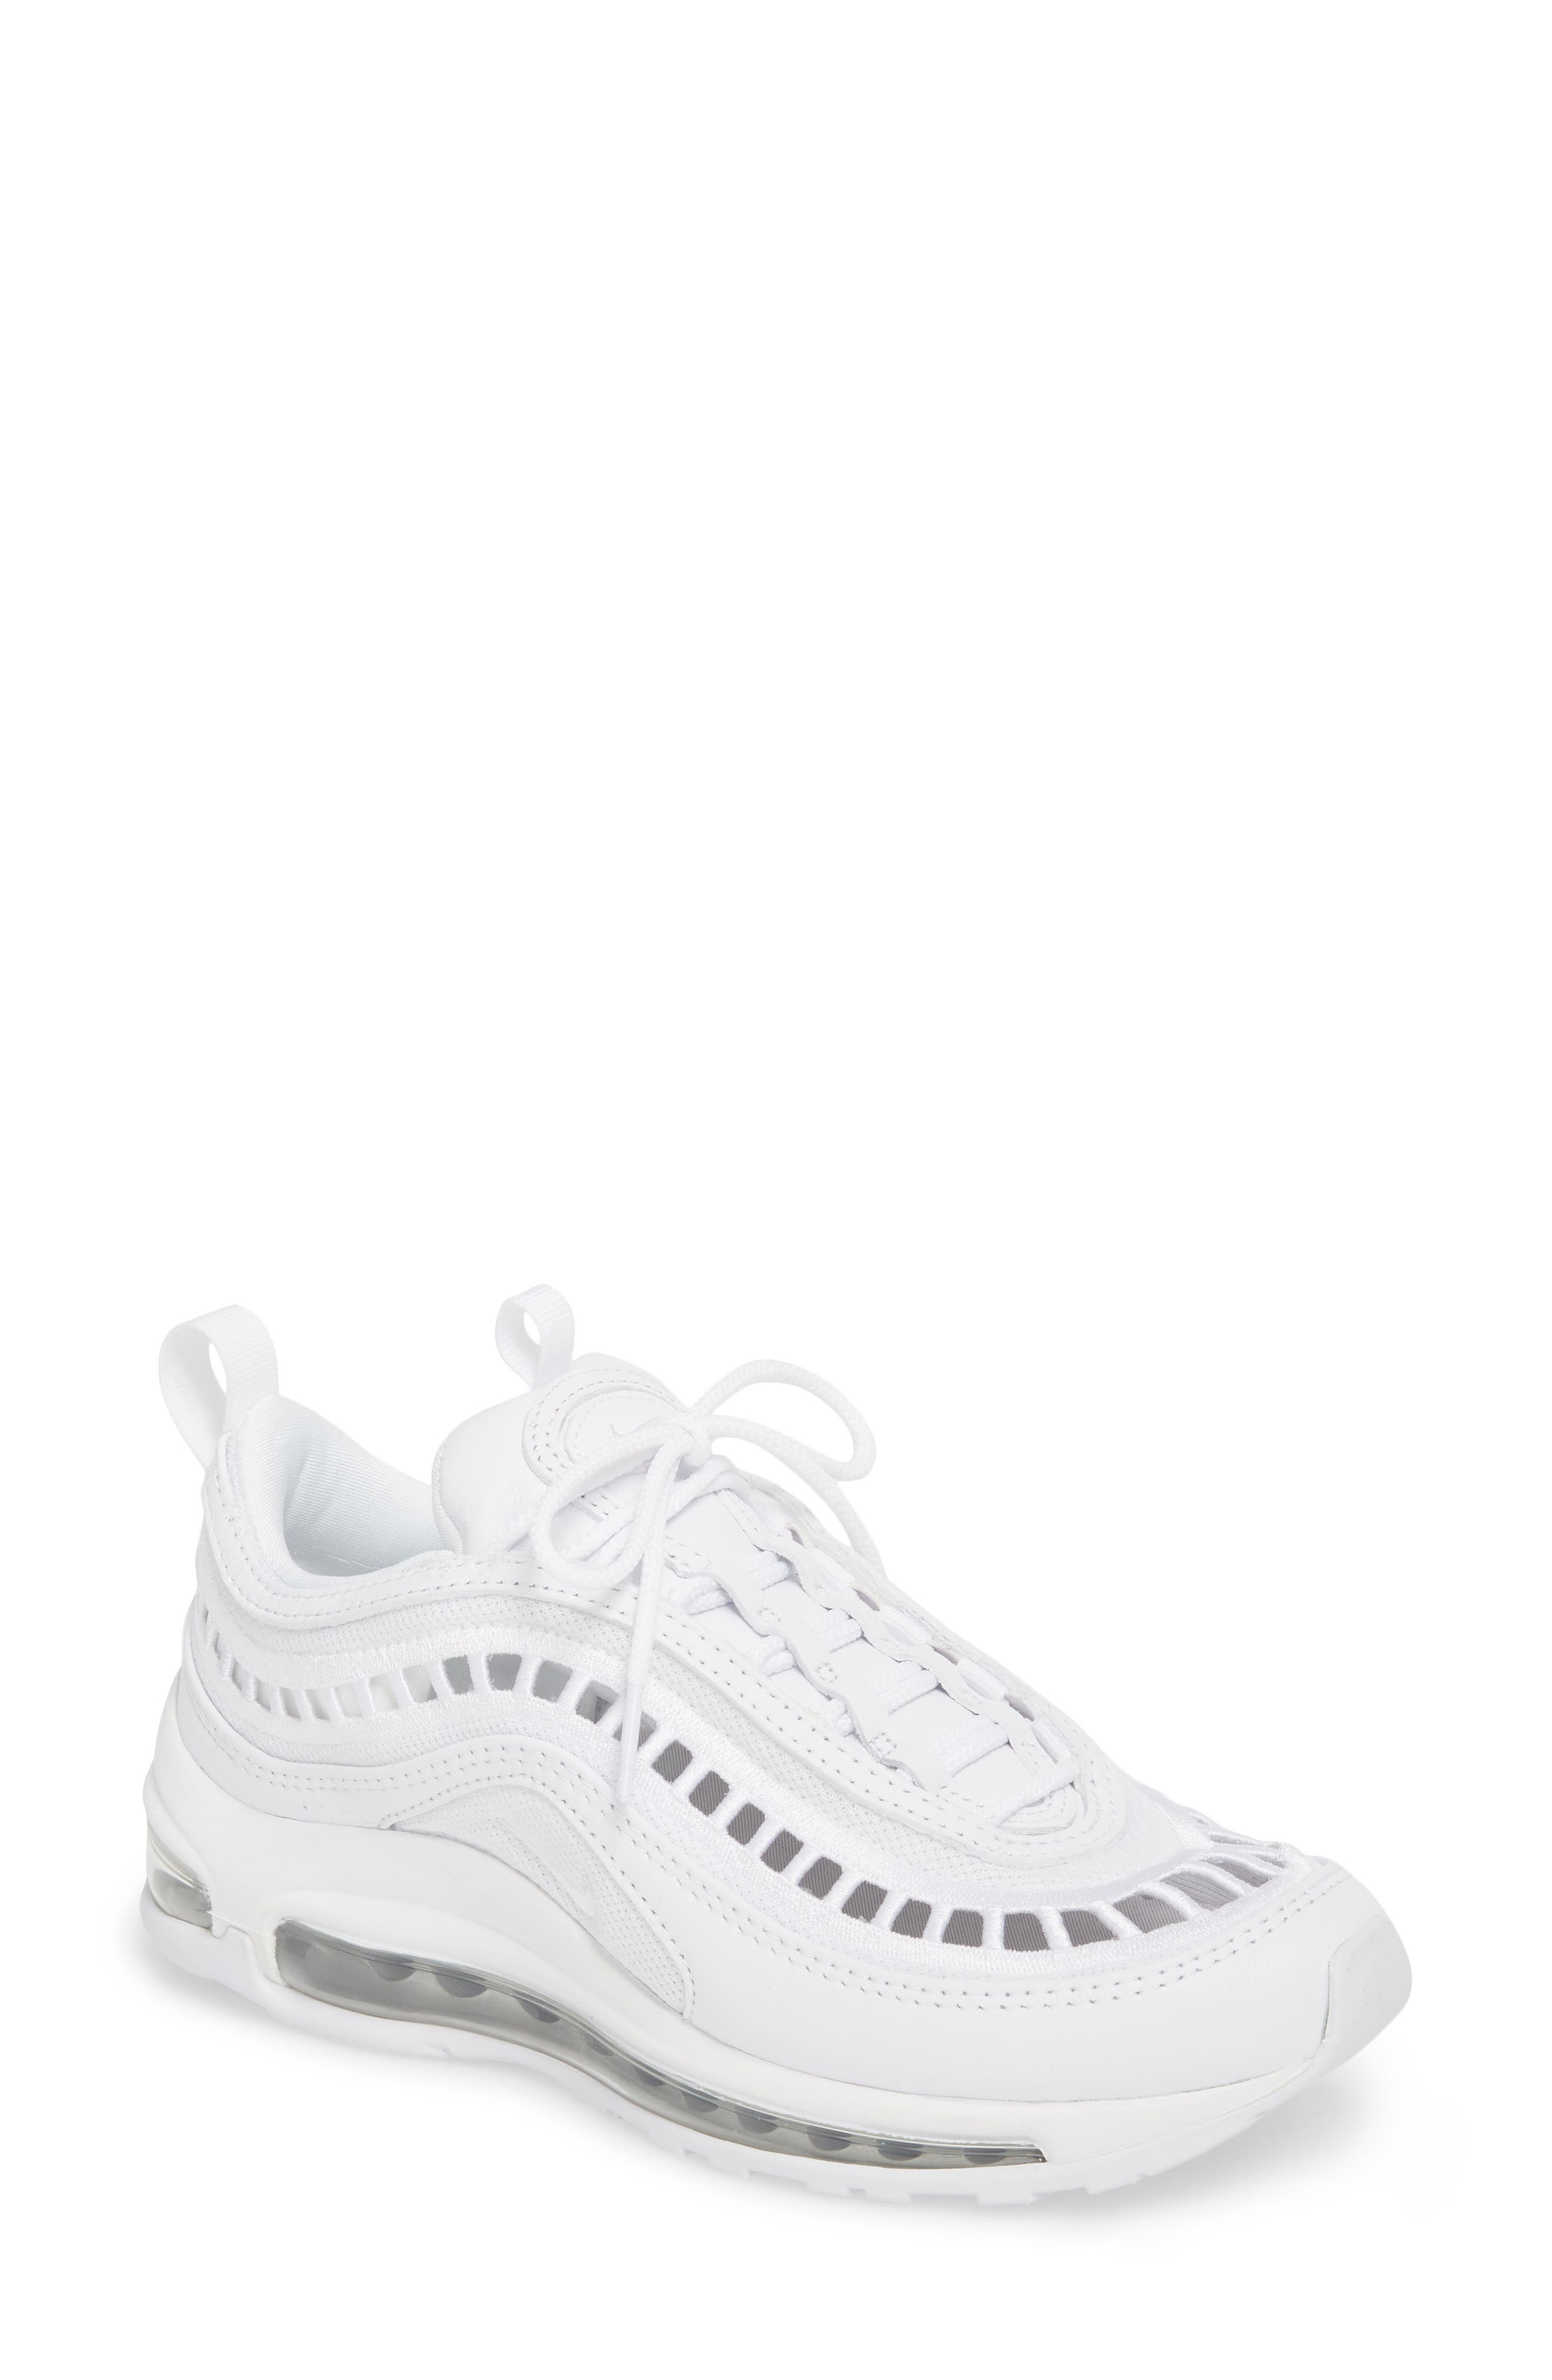 Air Max 97 Ultra '17 SI Sneaker,                         Main,                         color, WHITE/ WHITE/ VAST GREY